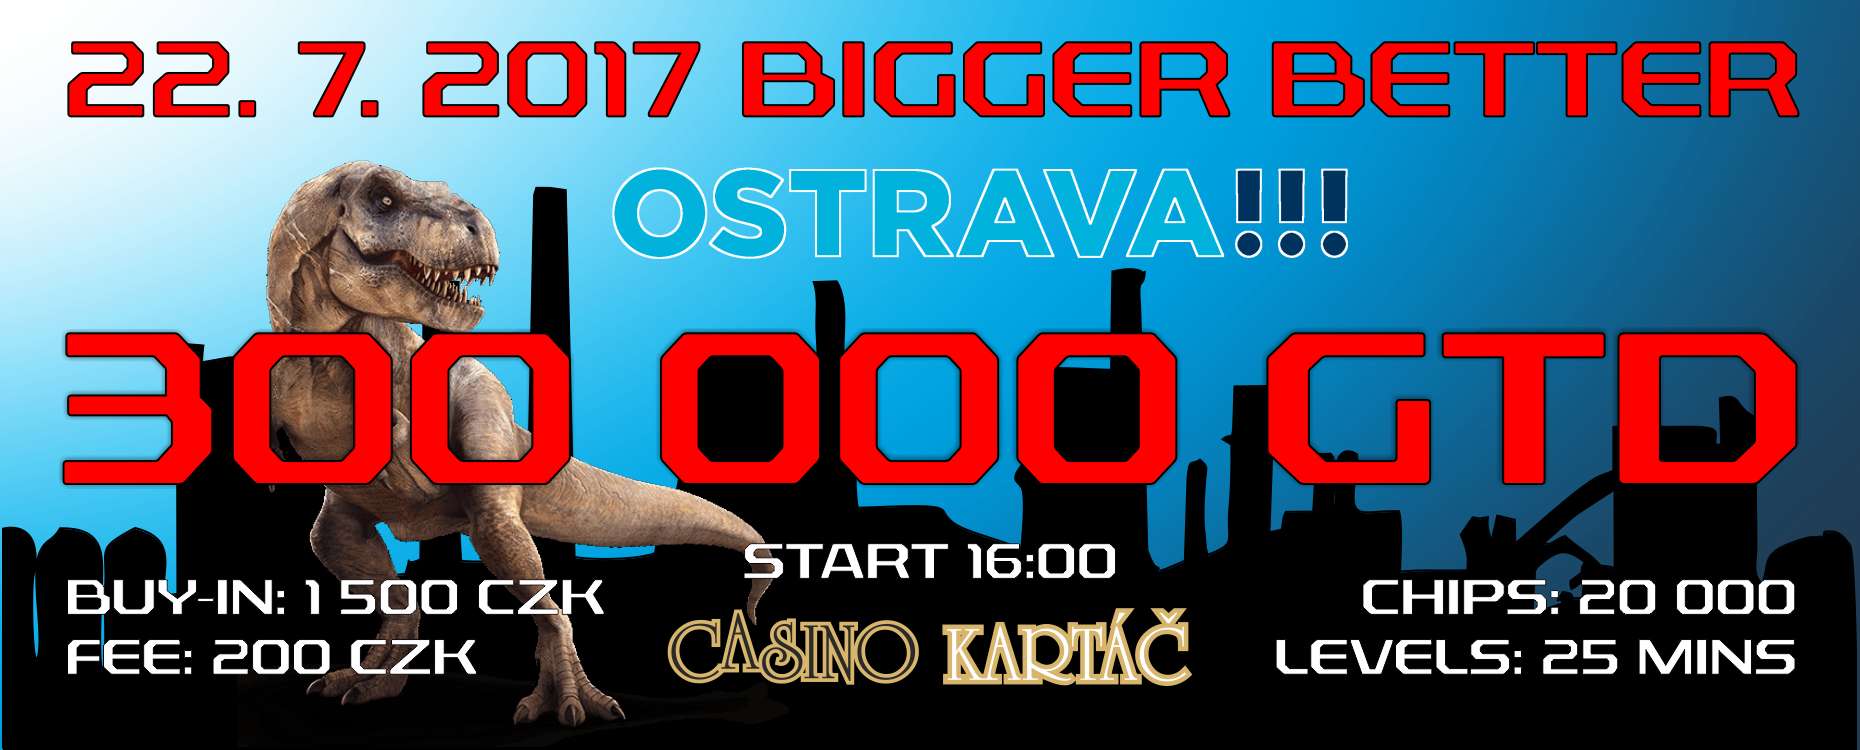 banner bigger big cervenec 2017